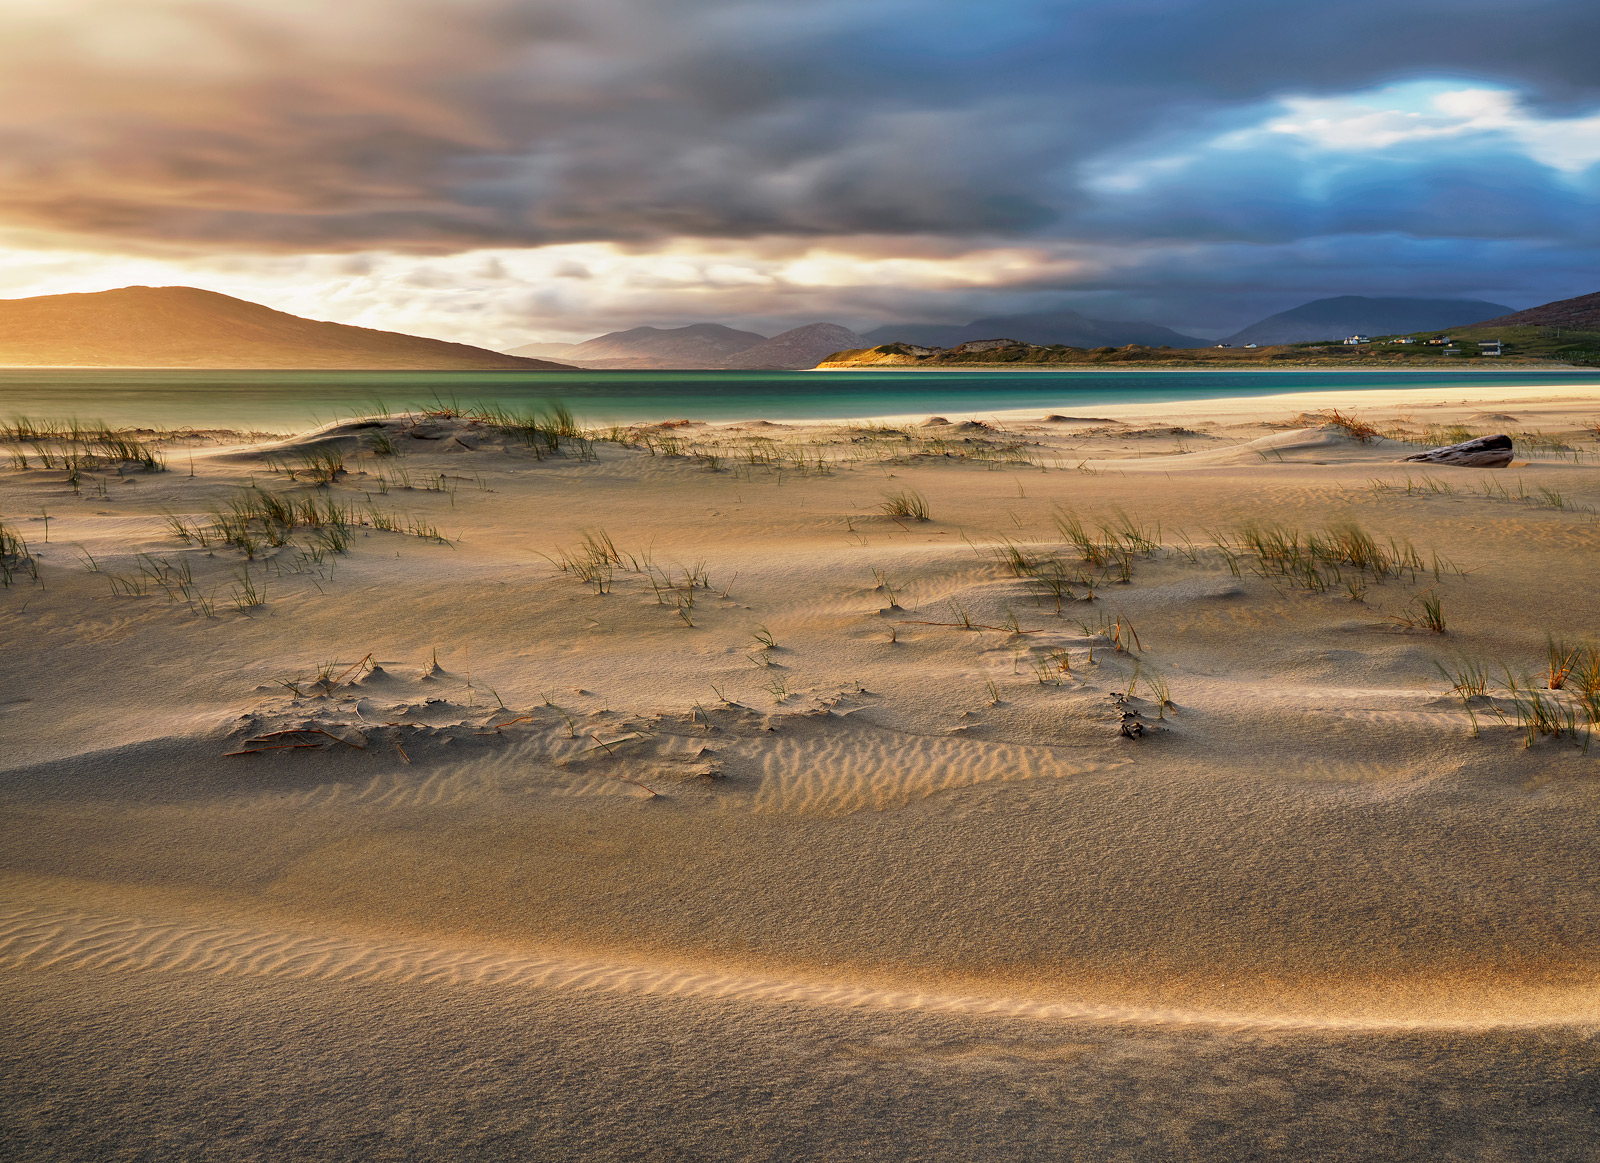 Beautiful soft light gently lit the sand beds at Seilebost beach on Harris next to the dunes.